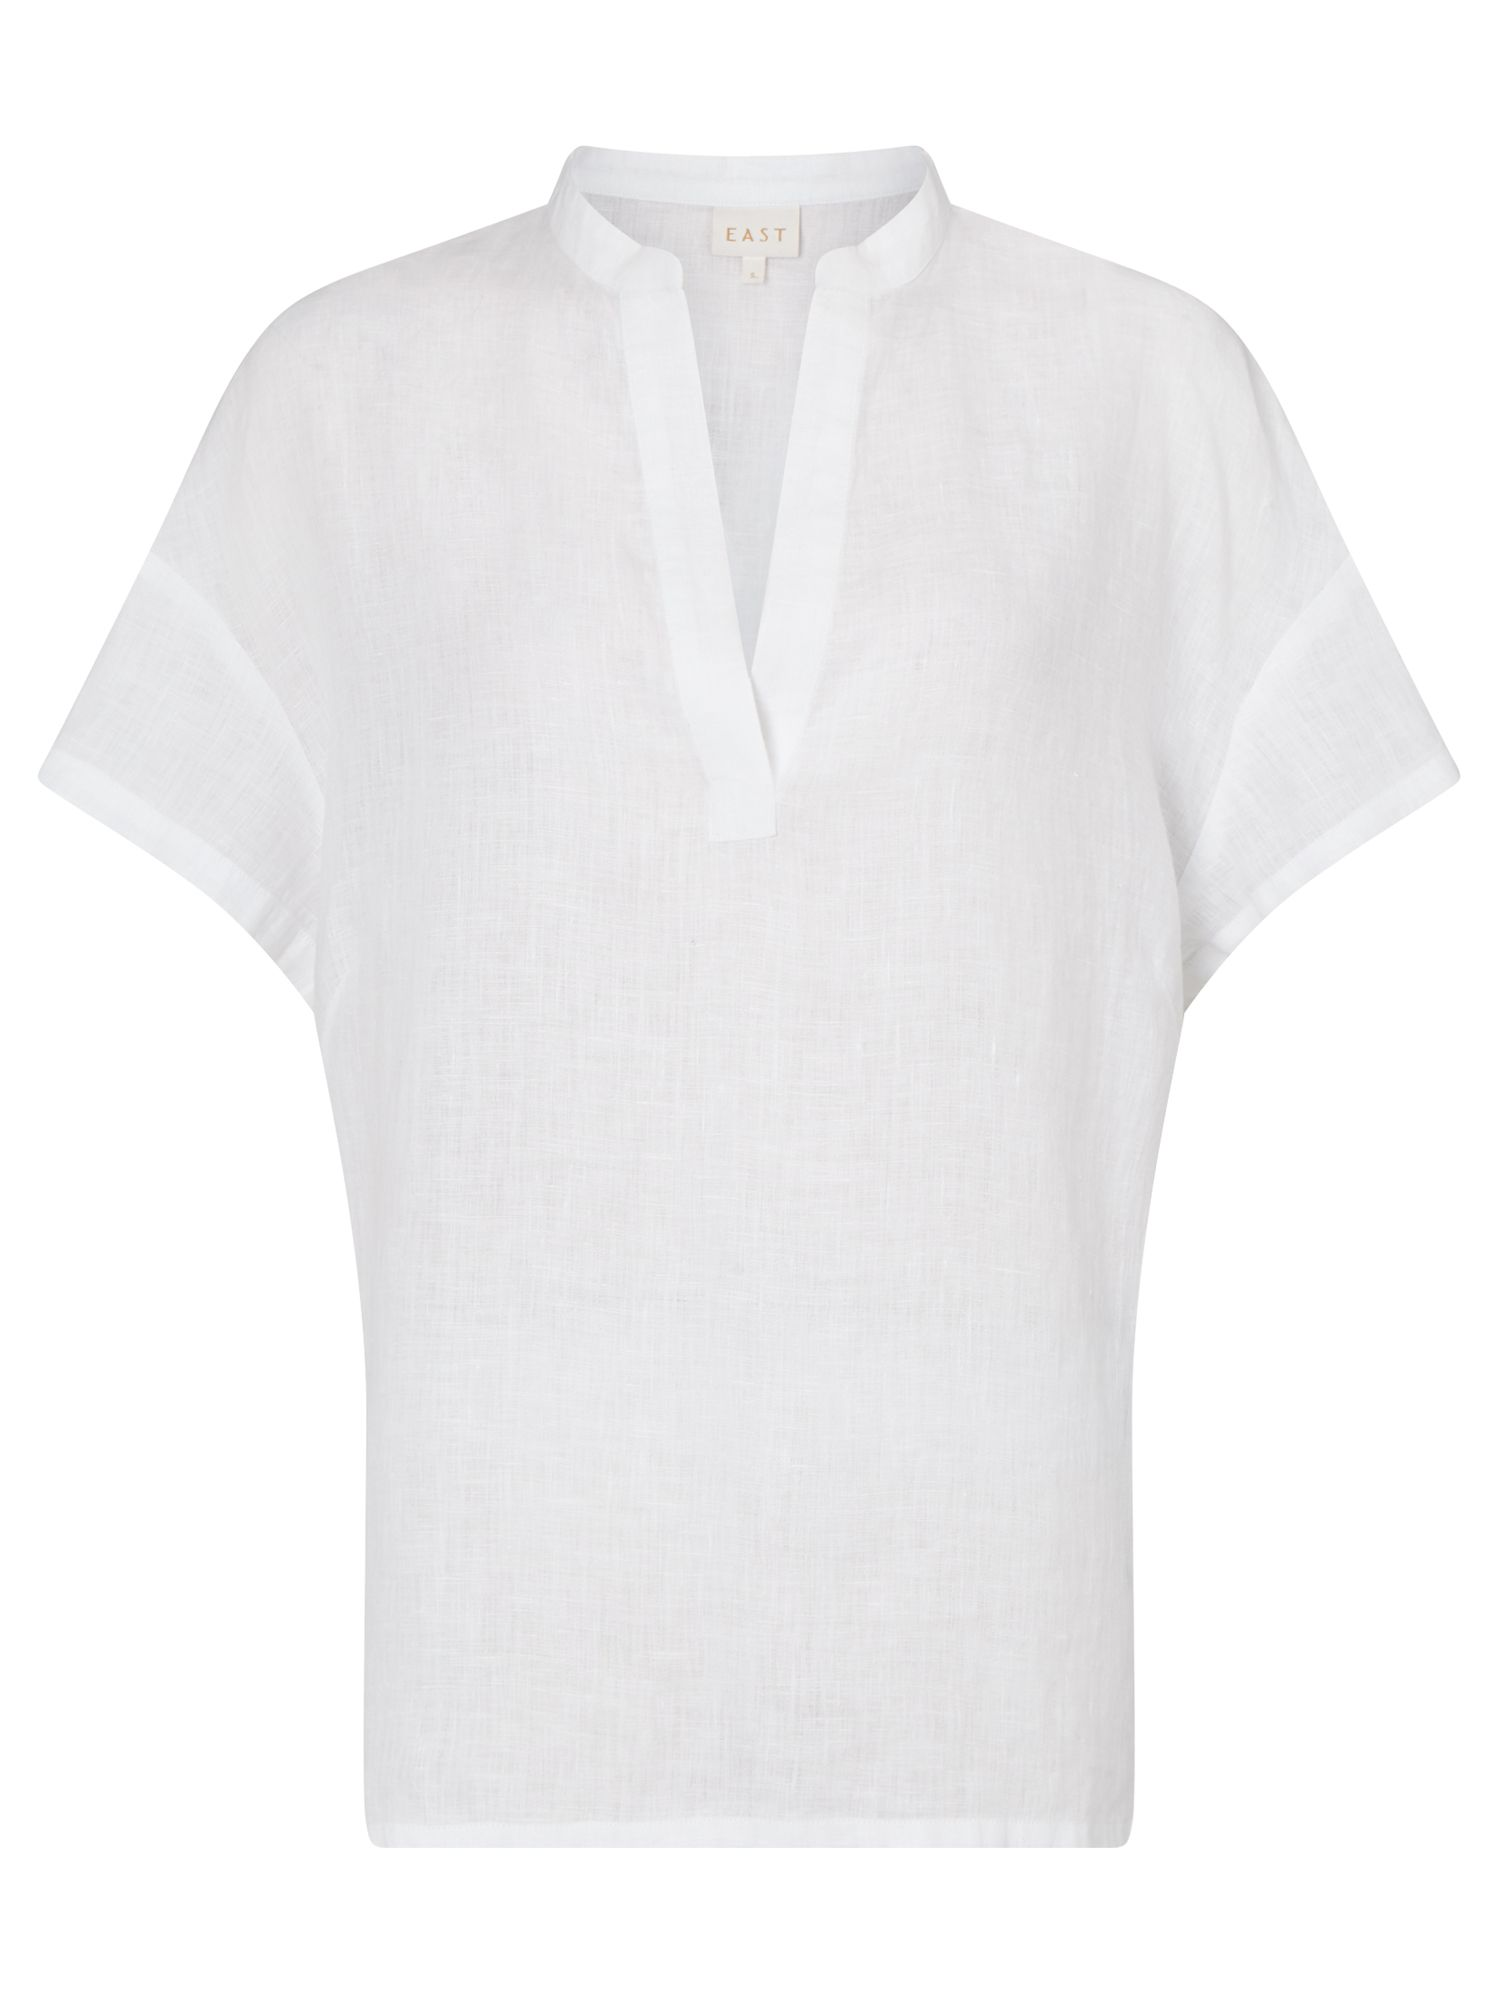 East Linen Marilyn Top, White